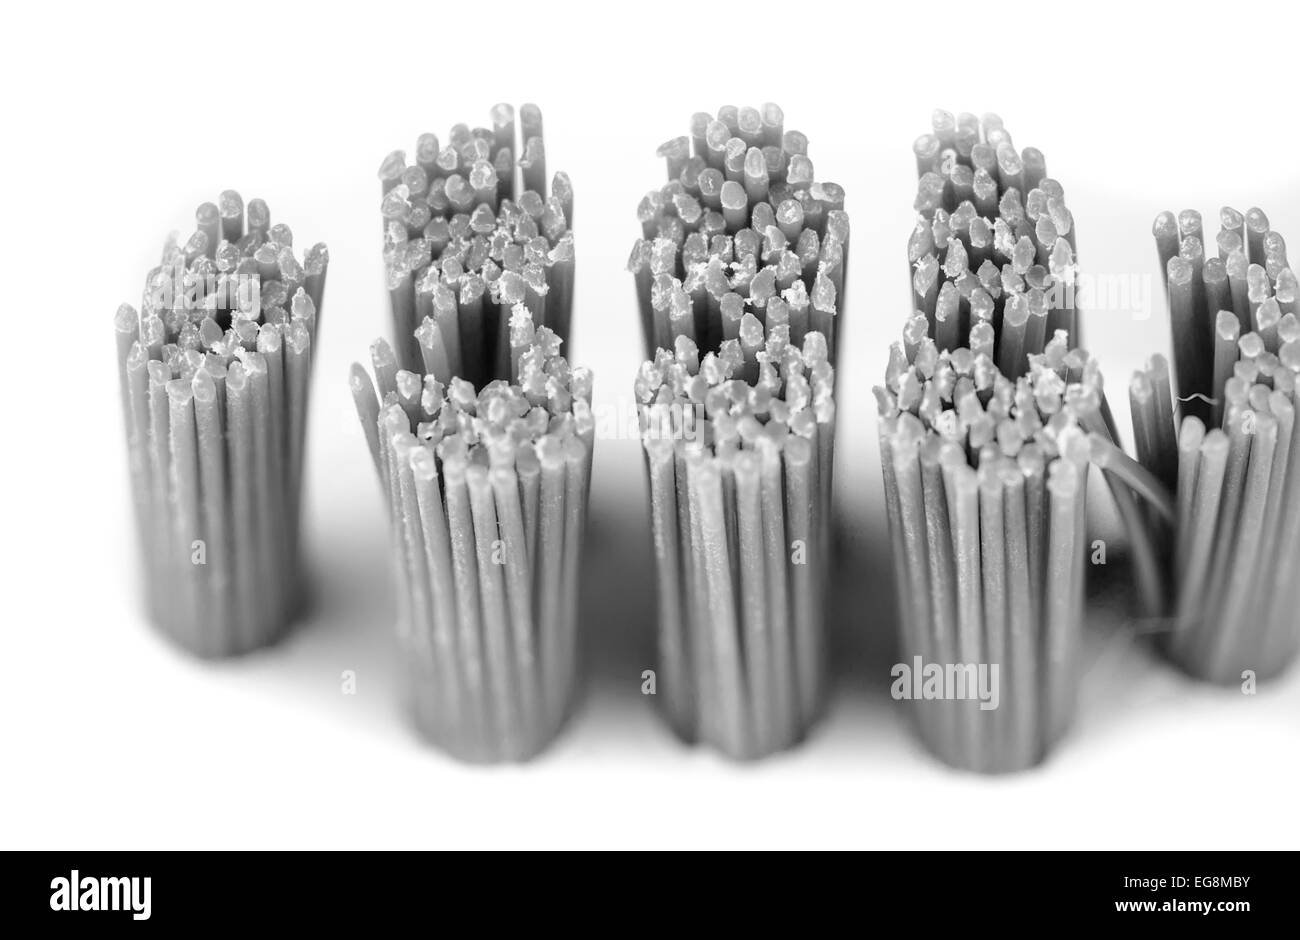 Bristles from a cleaning brush. - Stock Image